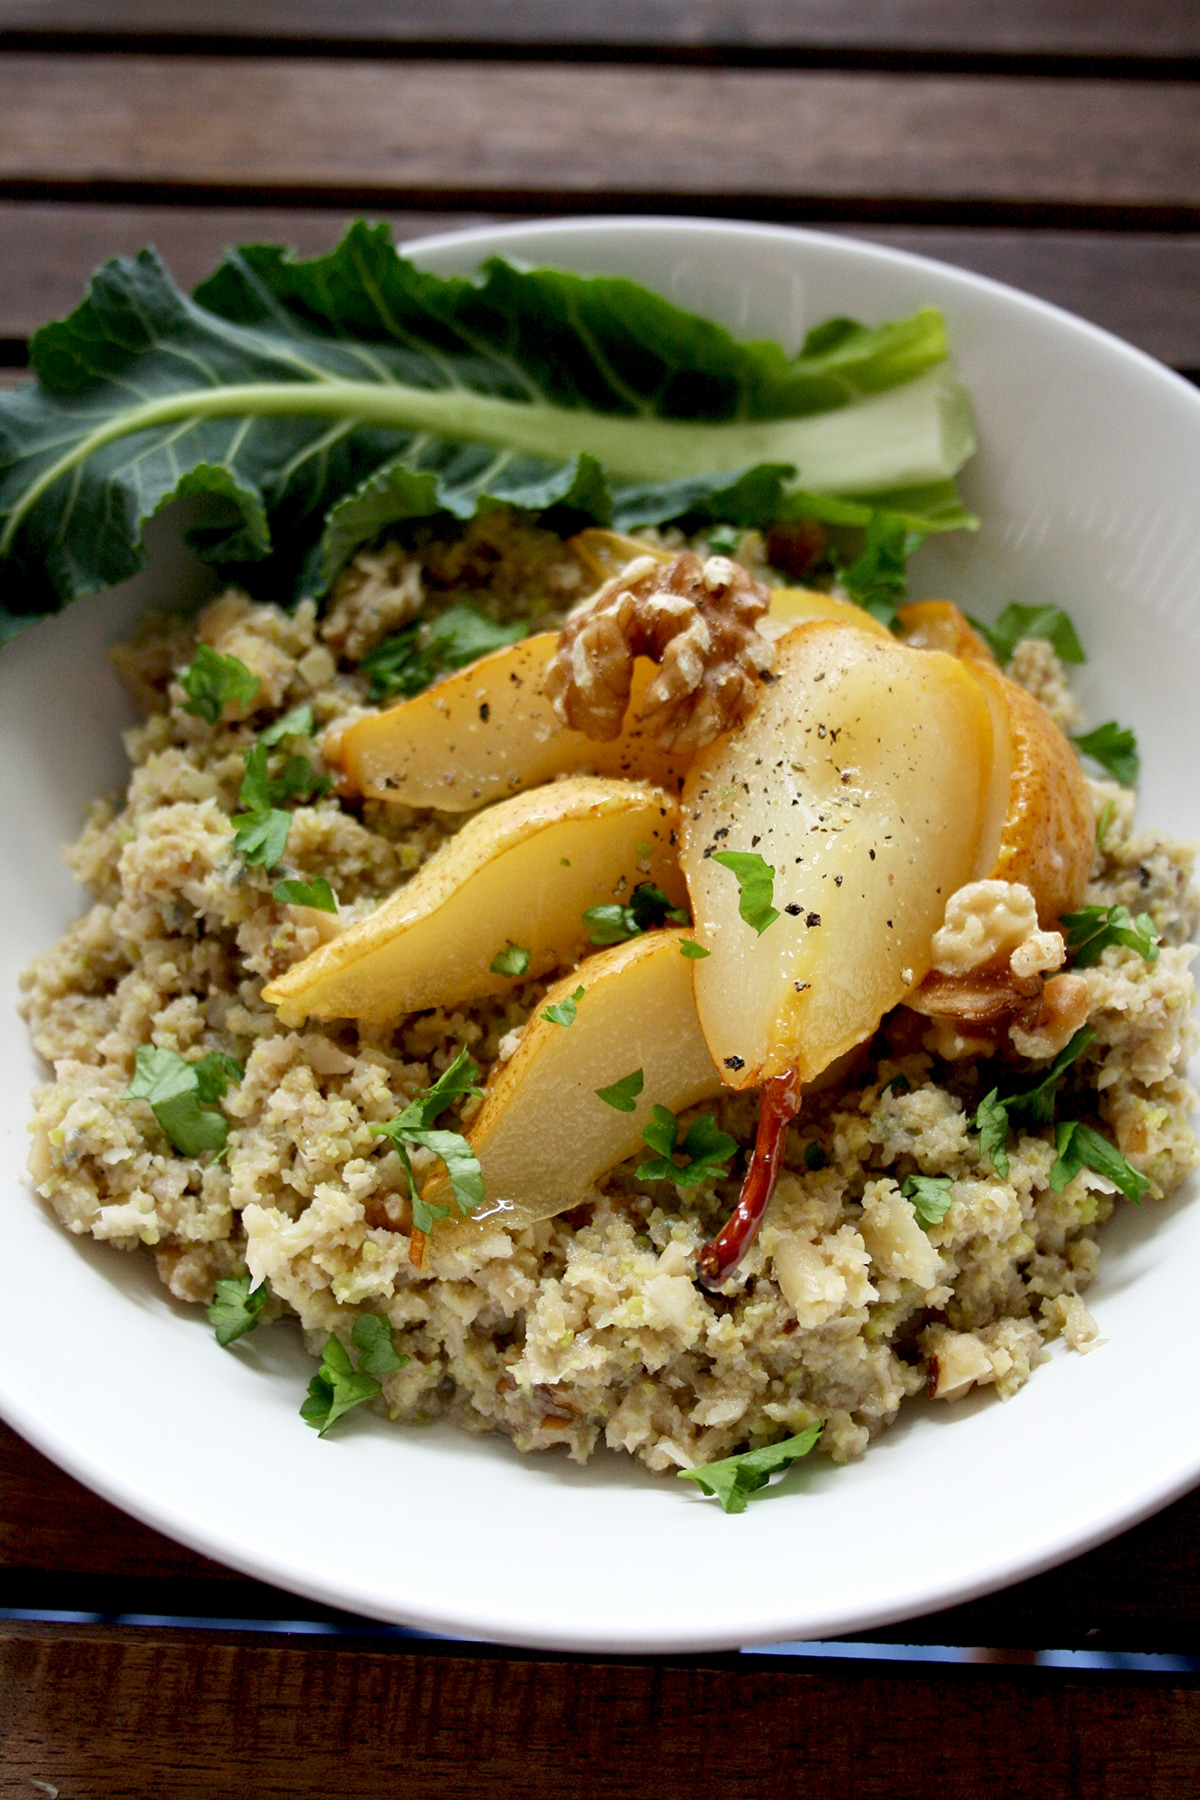 Cauliflower Risotto with Caramelized Pears, Blue Cheese and Walnuts